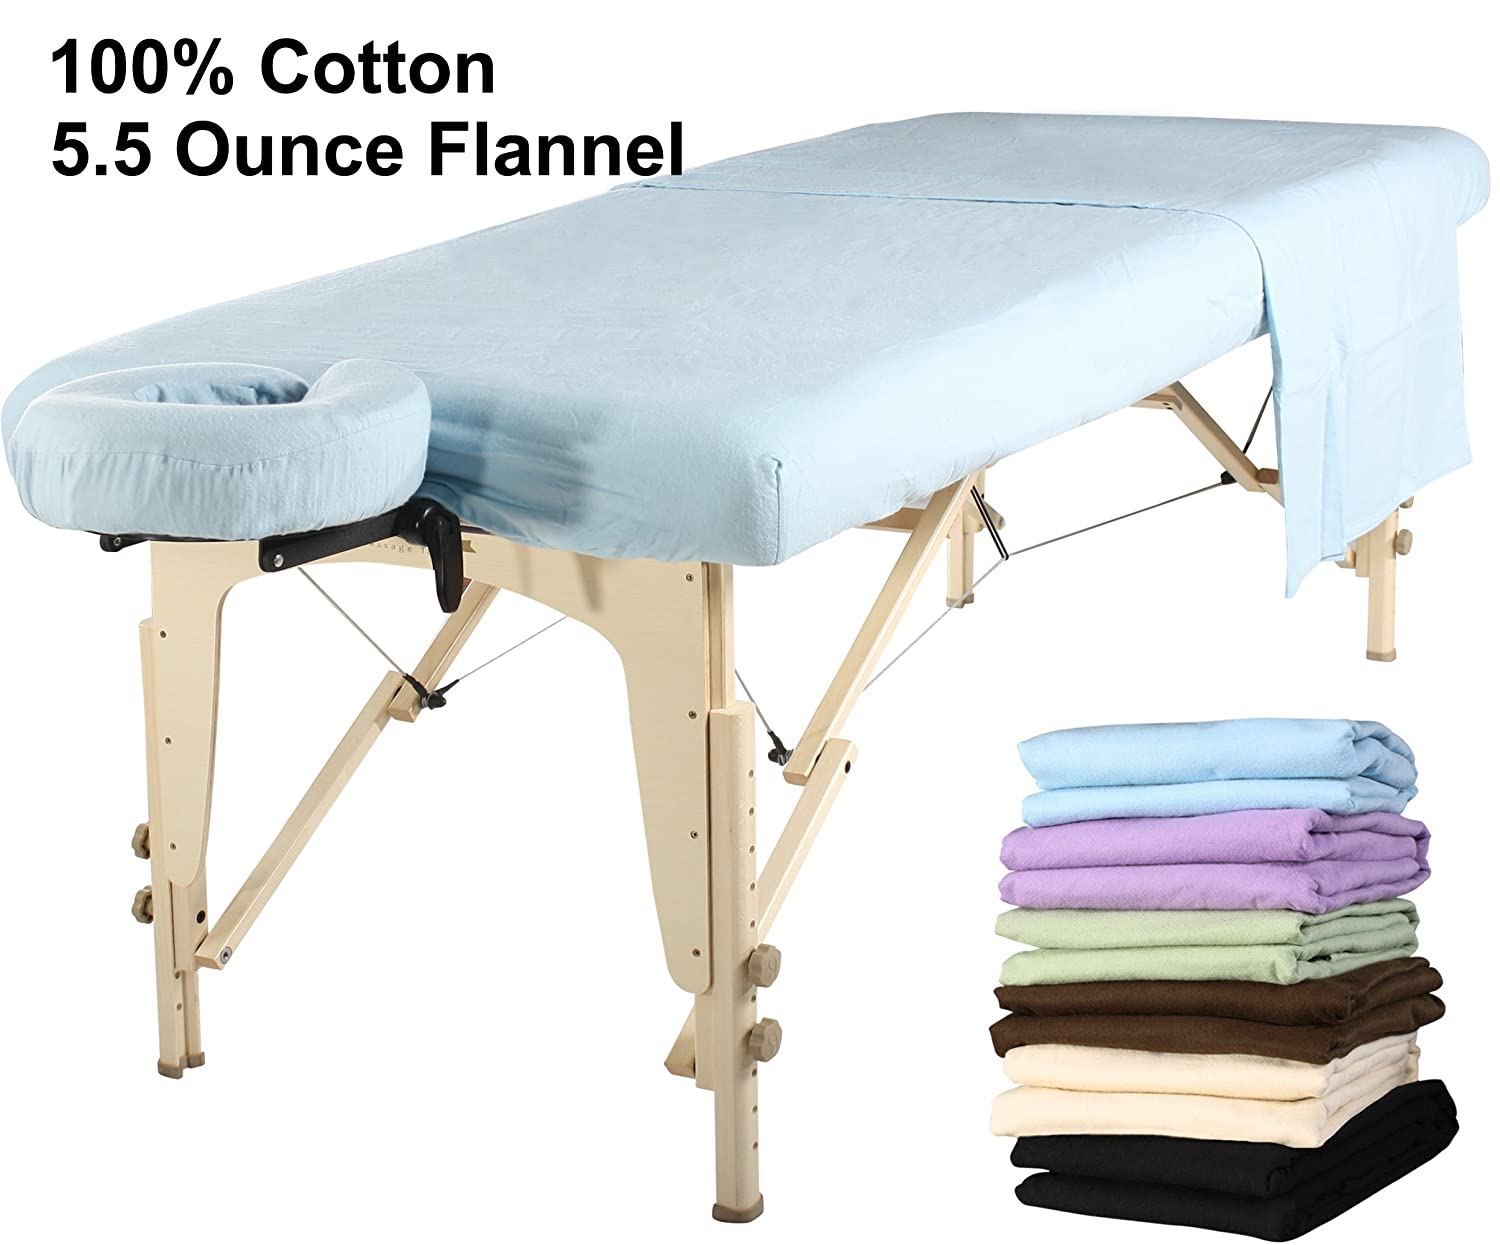 Master Massage Table Flannel Sheet Set 3 In 1 Table Cover, Face Cushion Cover, Table Sheet Black, 1count : Beauty